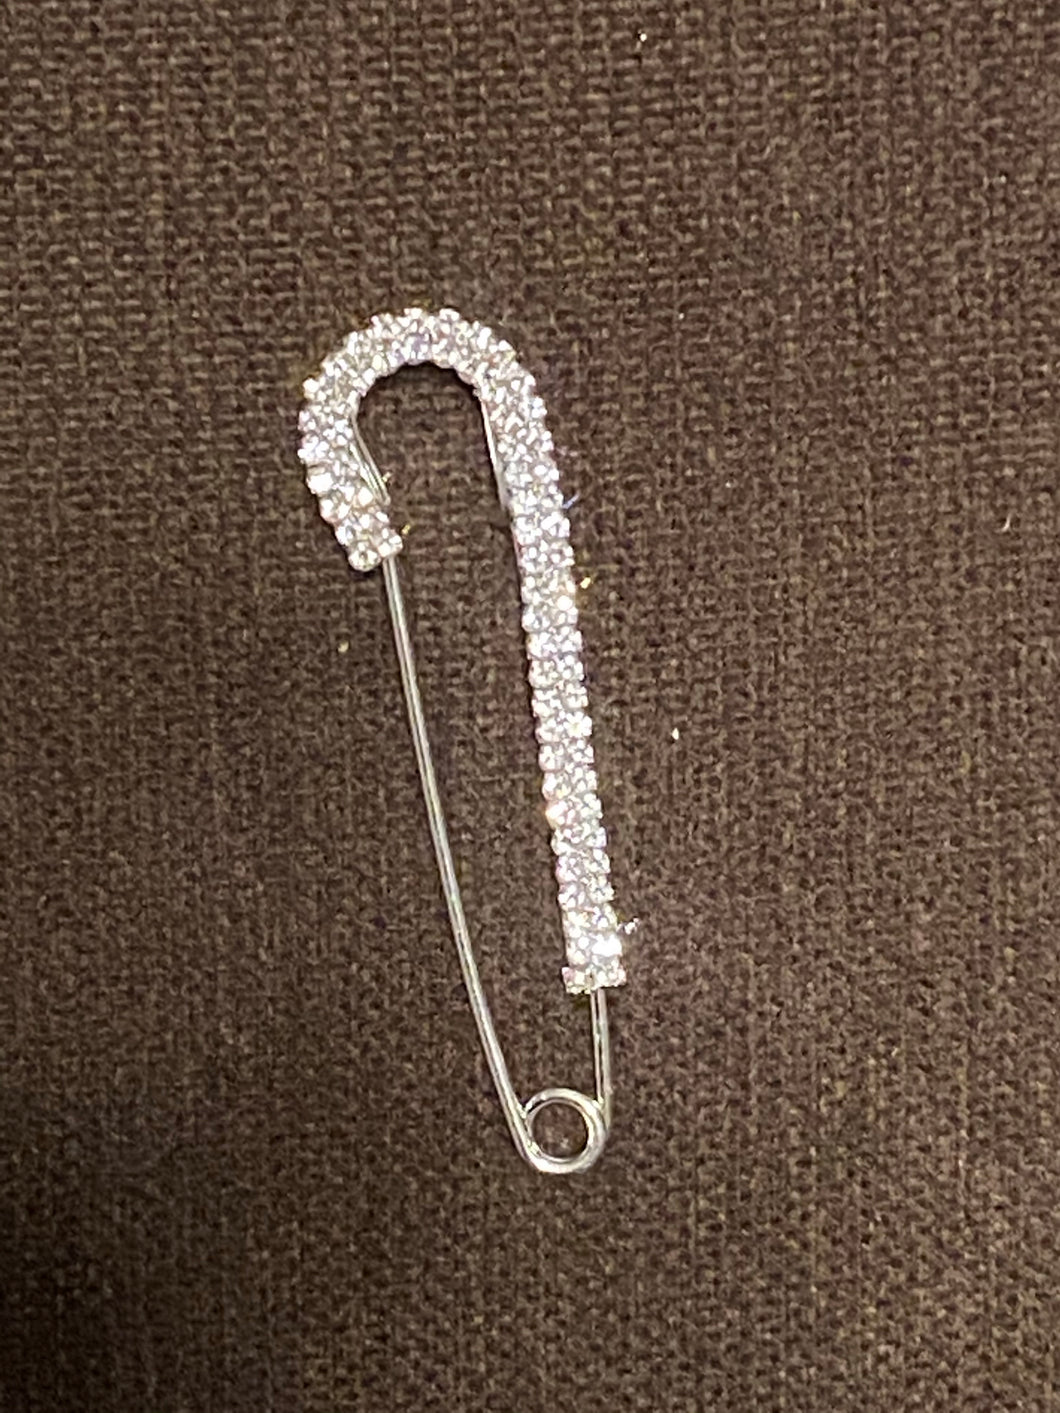 Safety Pin Style Brooch